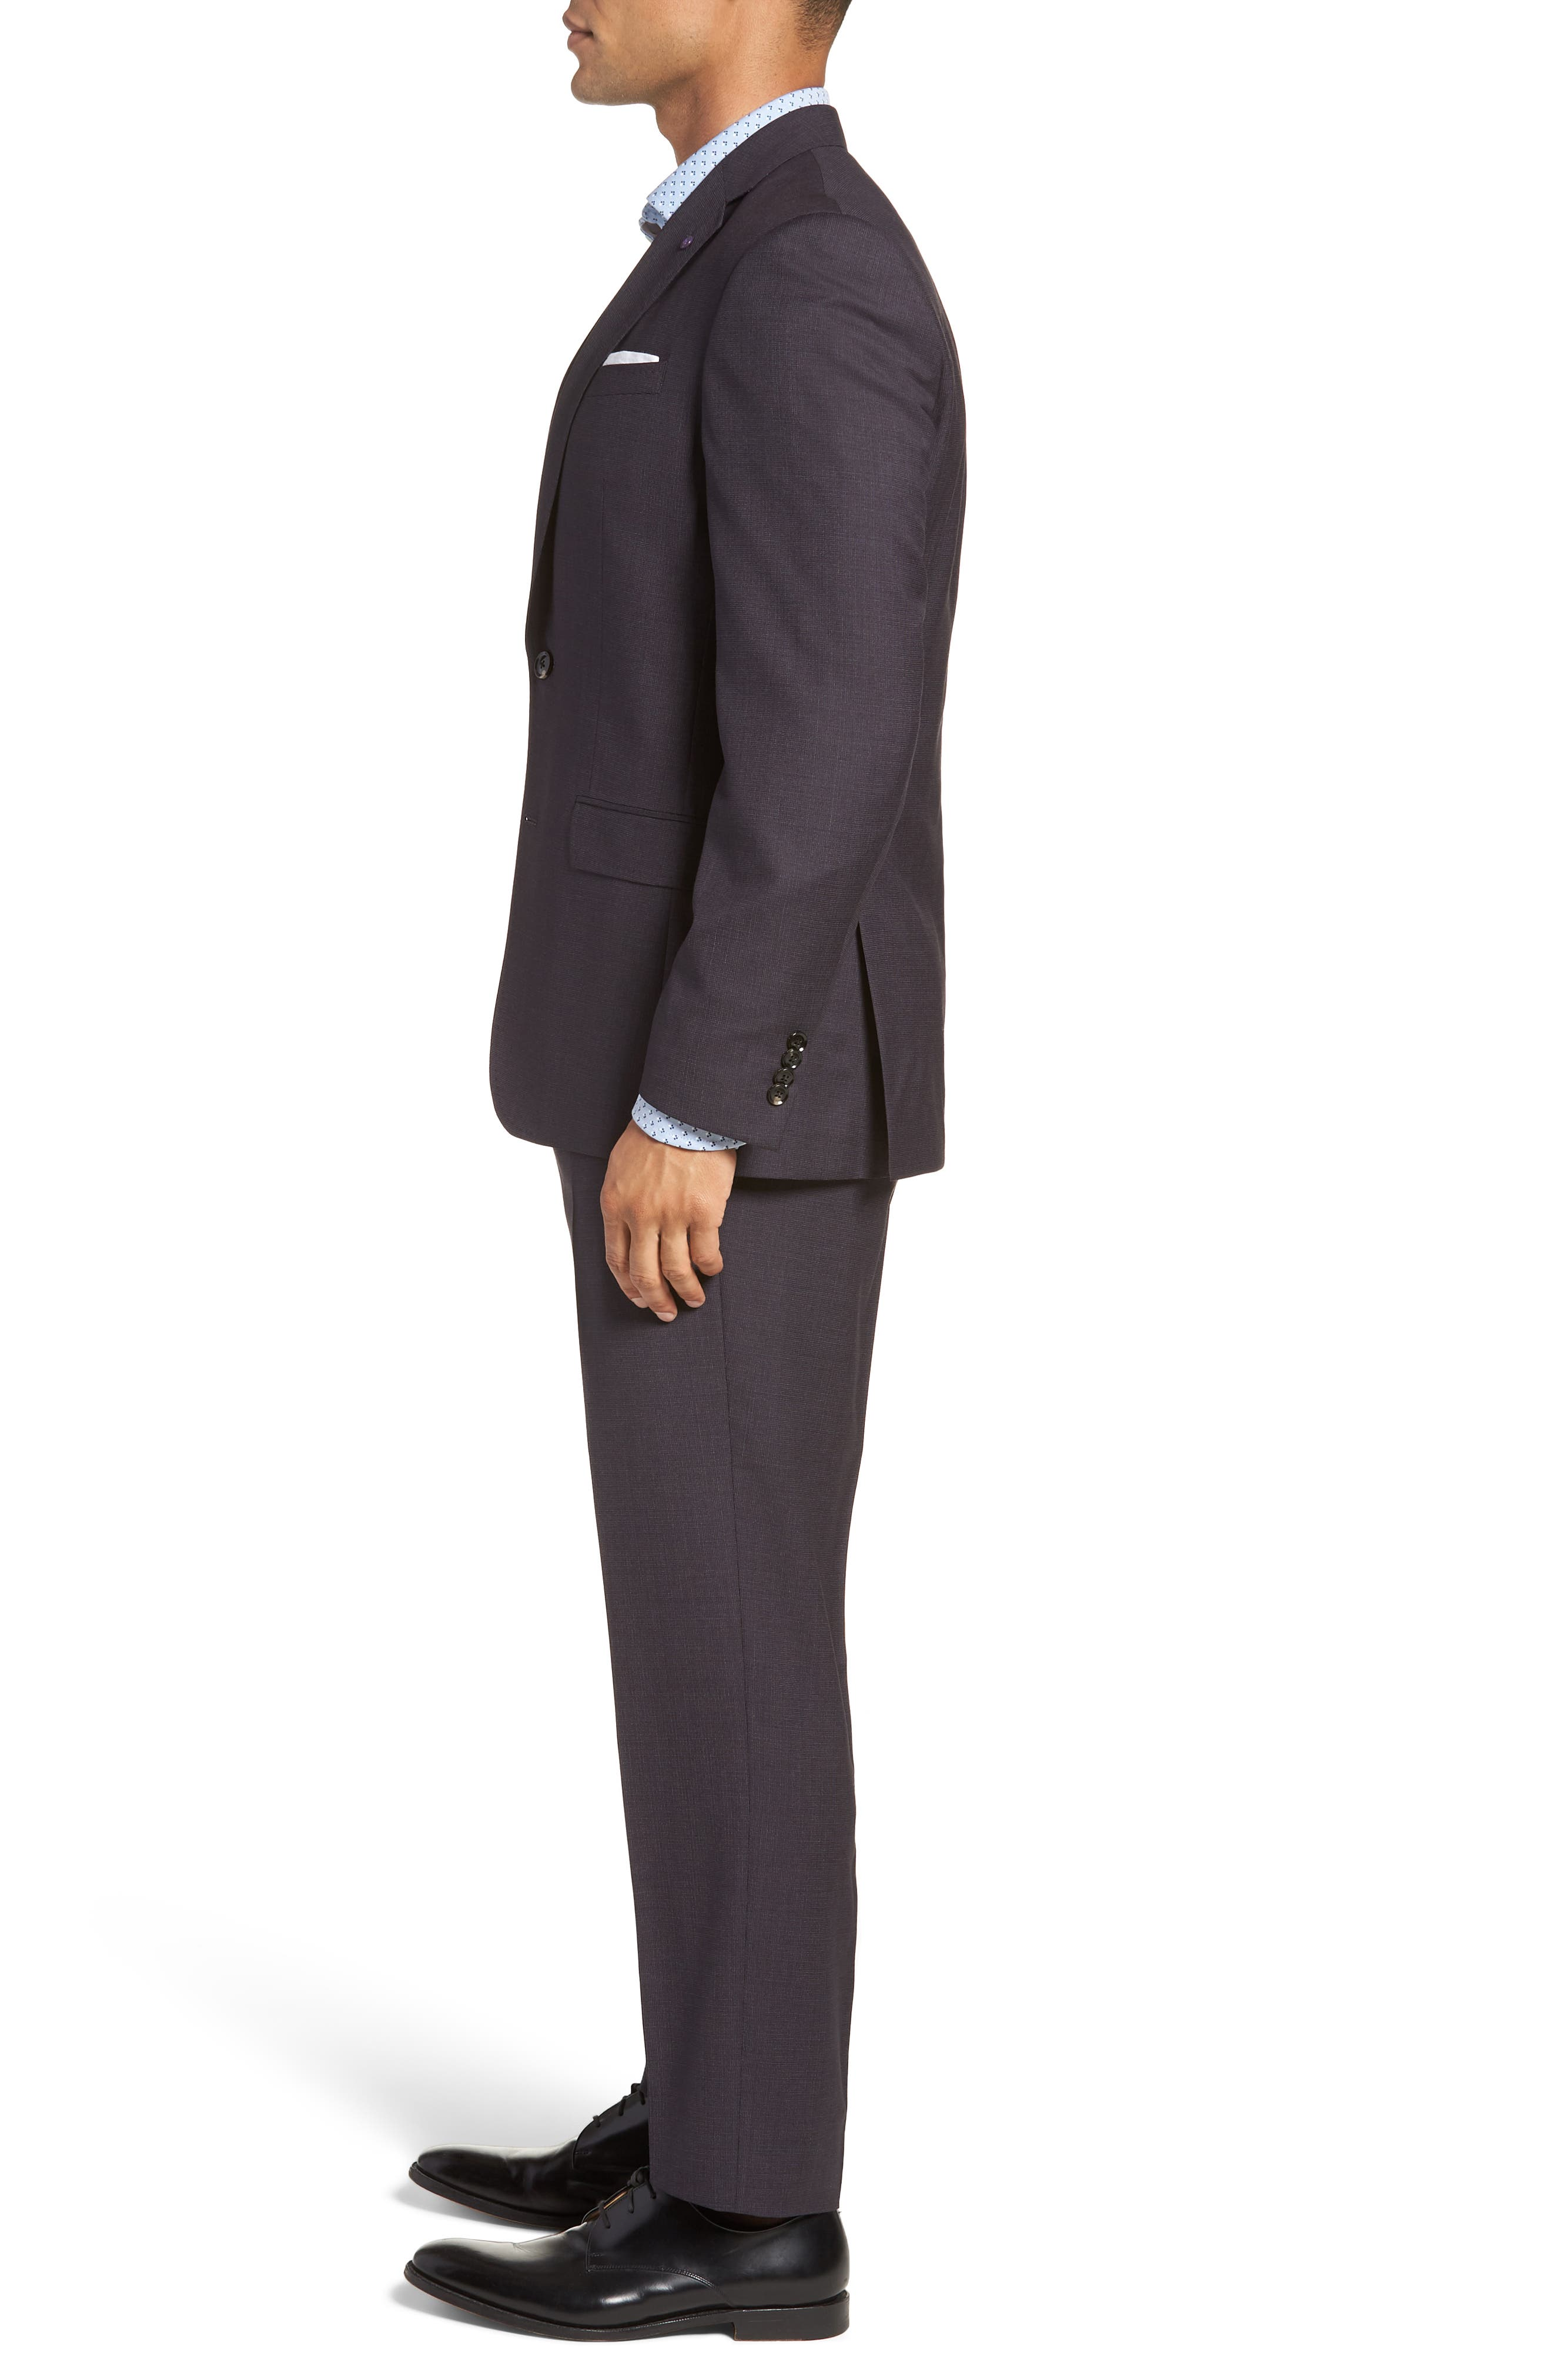 Jay Trim Fit Solid Wool Suit,                             Alternate thumbnail 3, color,                             Brown Multi